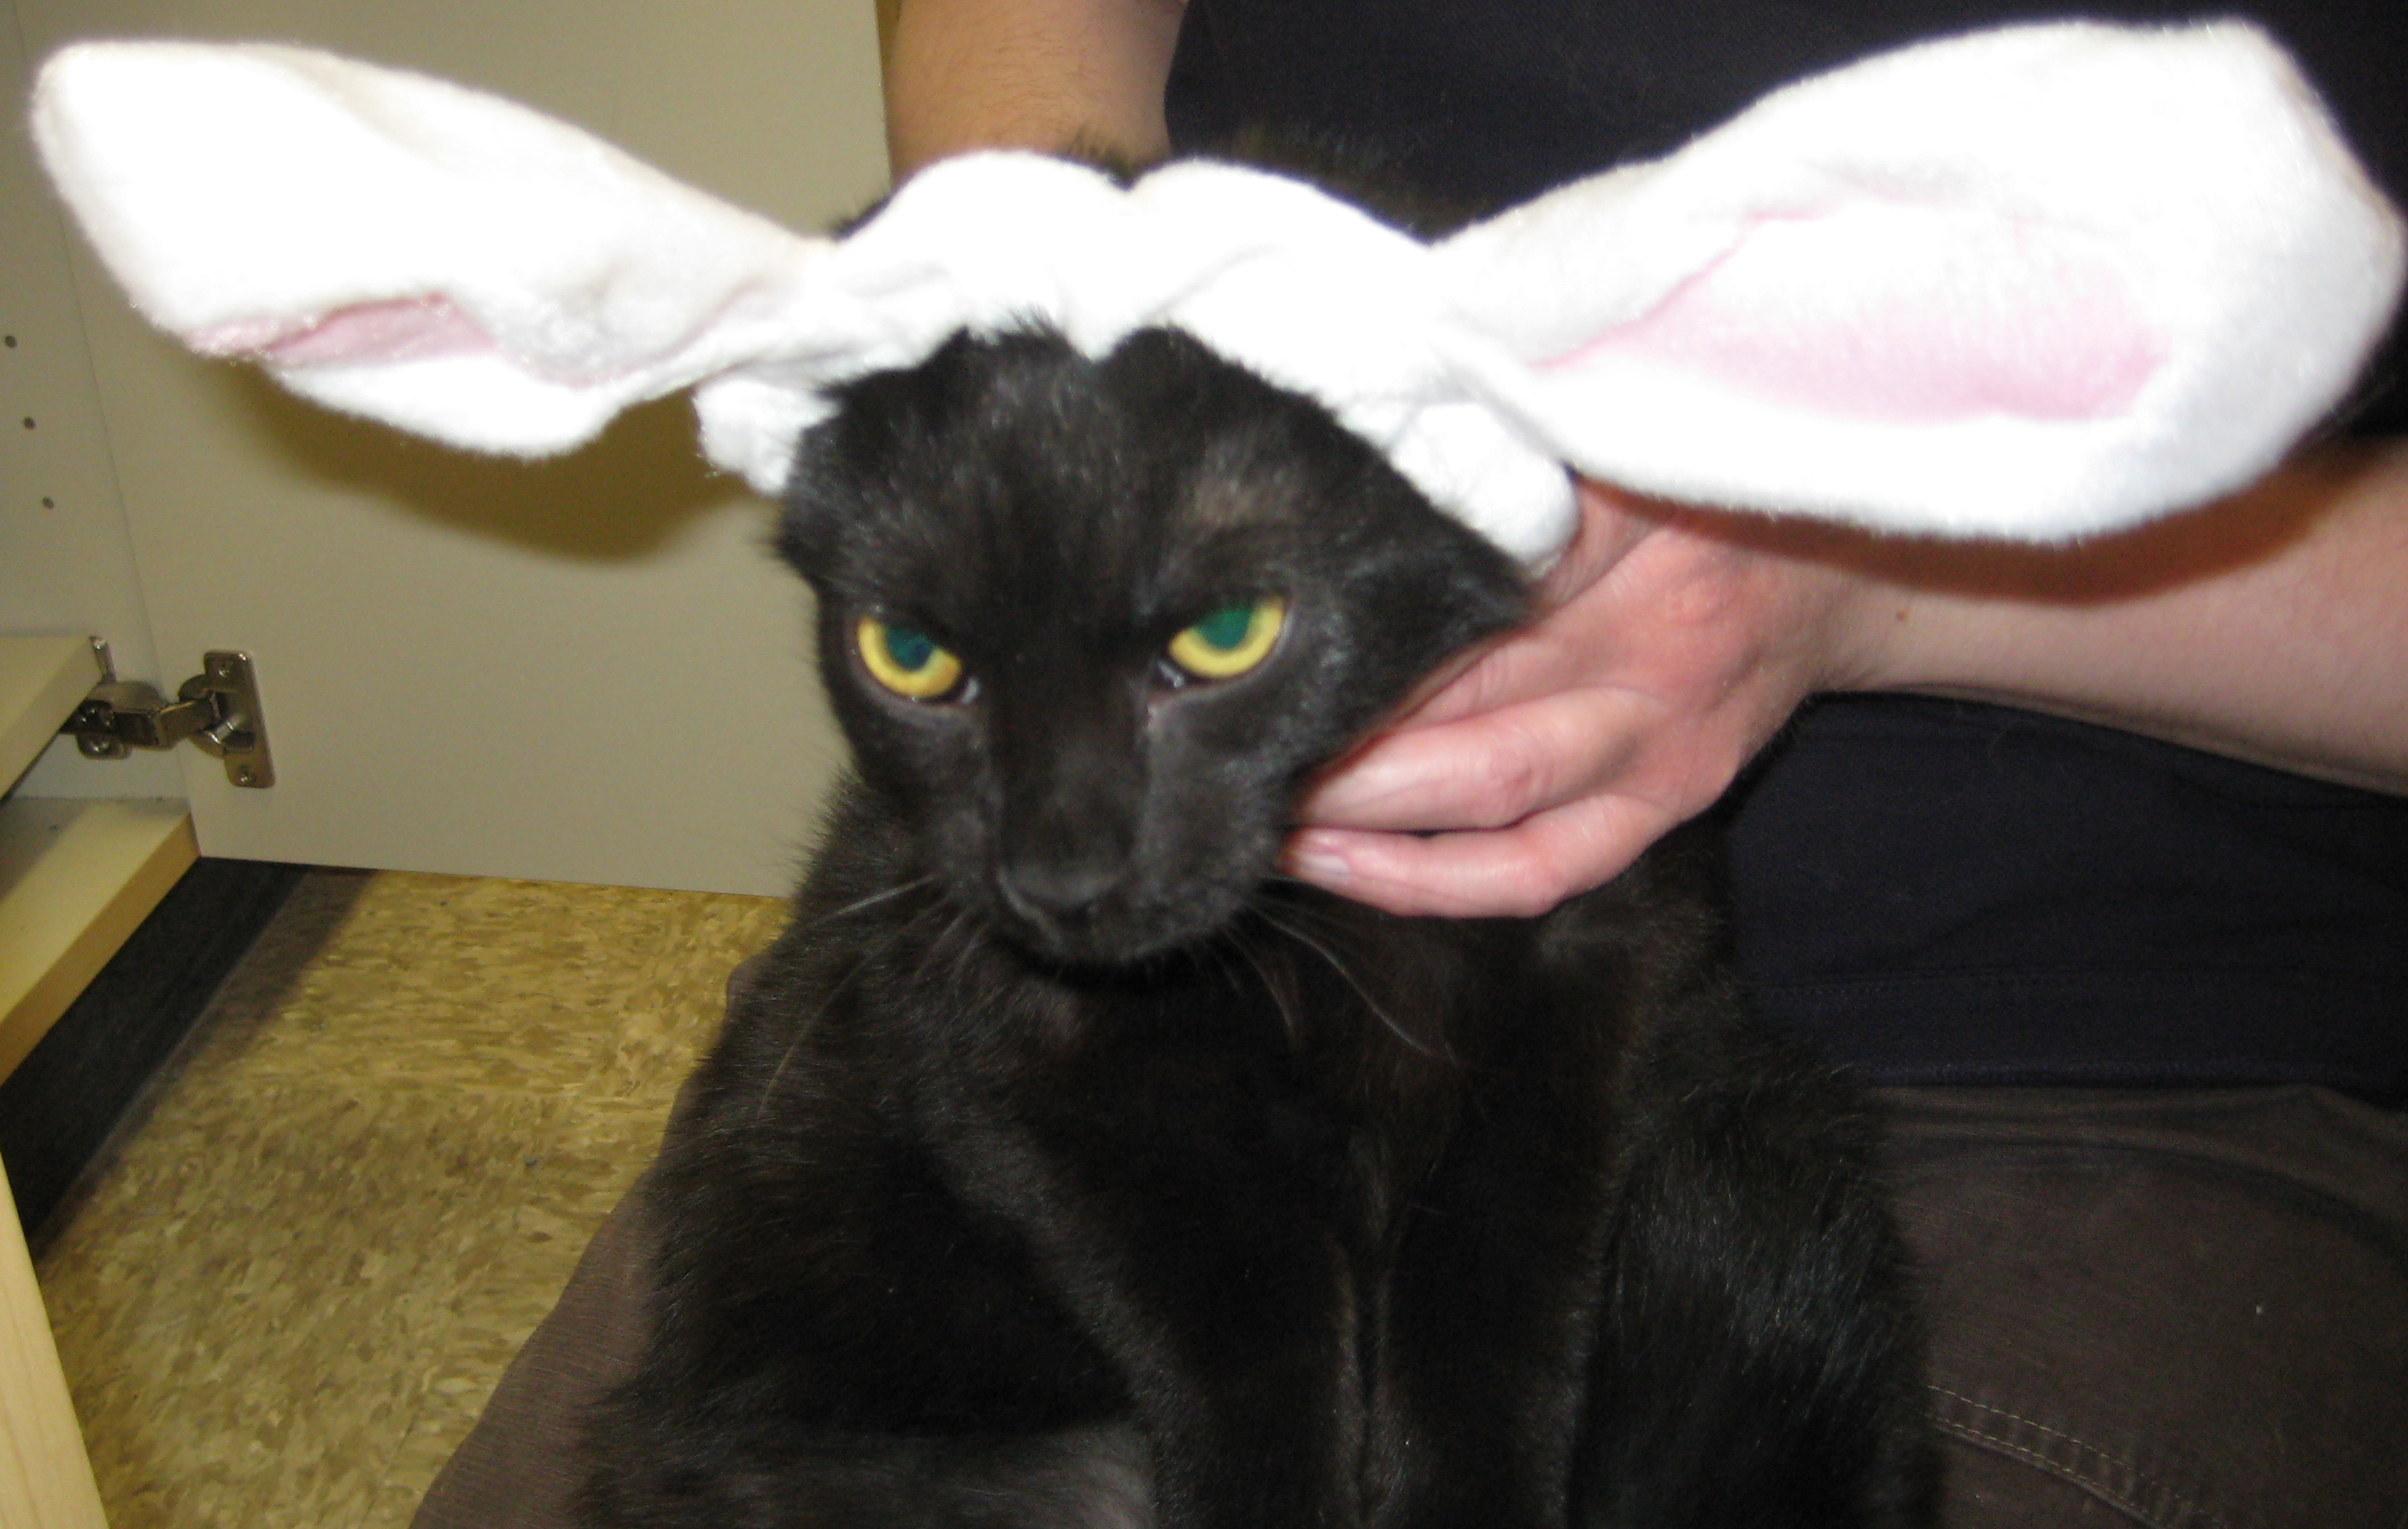 An unhappy cat with rabbit ears.  Happy Easter!